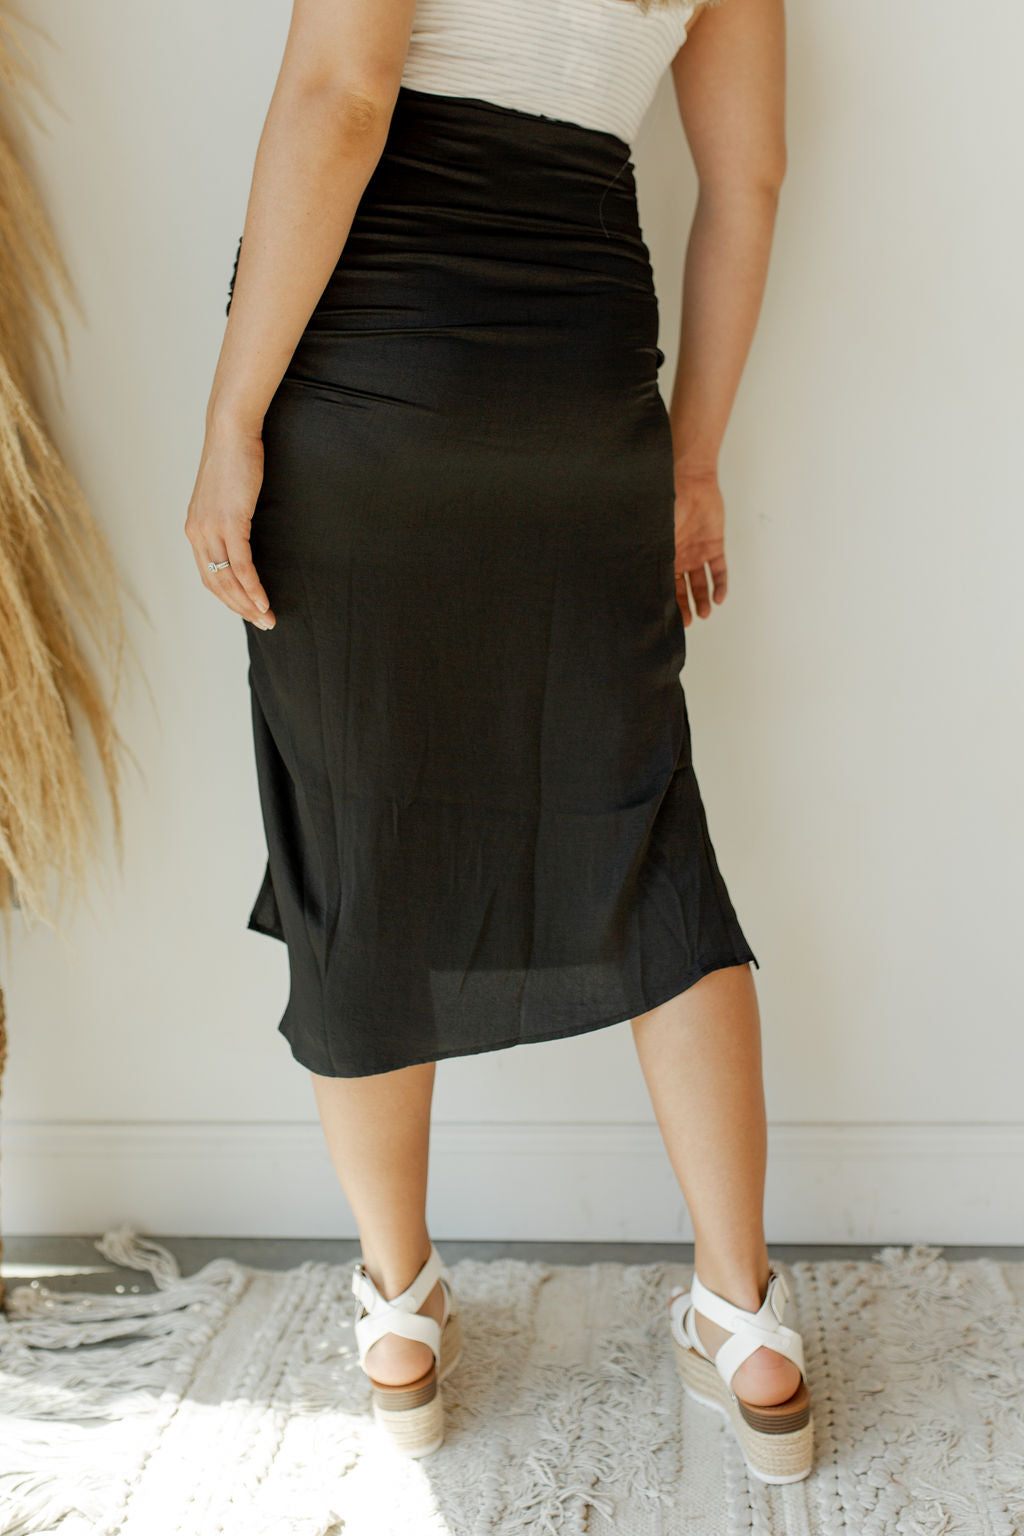 Savannah rouched midi skirt